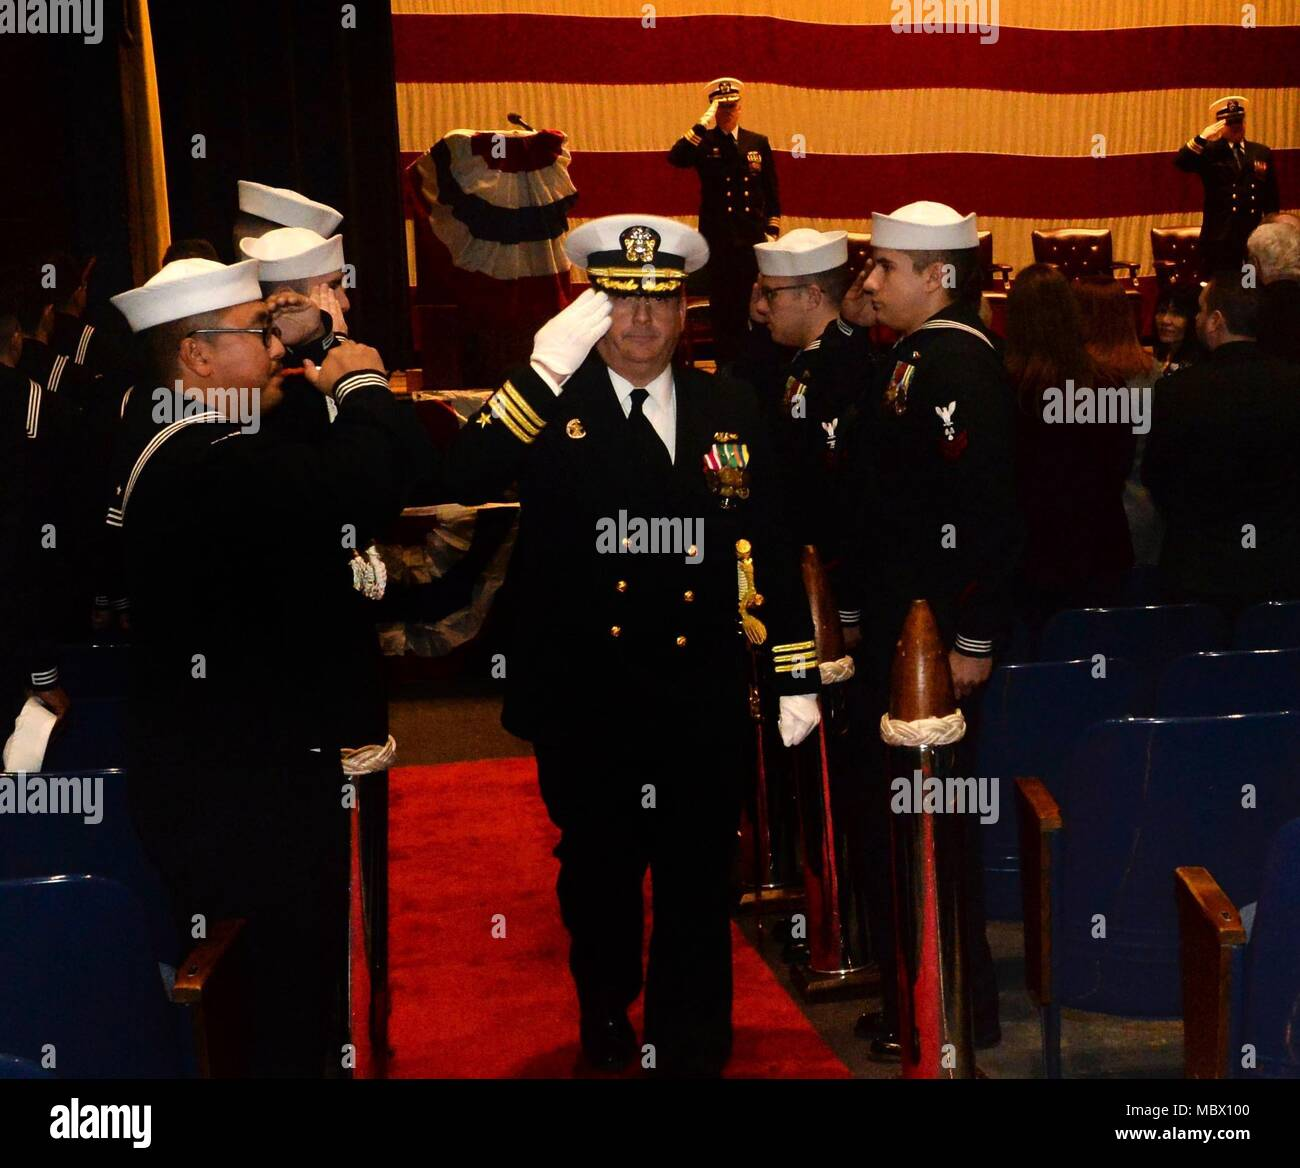 18011-N-LW591-028 GROTON, Conn. (Nov.17, 2017) Oklahoma City, Okla. native ¬Cmdr. Neil Colston, former commanding officer of the nuclear-powered Los Angeles class, fast-attack submarine, USS Pittsburgh (SSN 720), is rung ashore following a change of command ceremony after being relieved by Pittsburgh, Pa. native Cmdr. Jason Deichler at the Dealey Theater, Naval Submarine Base, New London in Groton, Conn. on Friday, Jan.12. (U.S. Navy photo by Mass Communication Specialist First Class Steven Hoskins/Released) - Stock Image